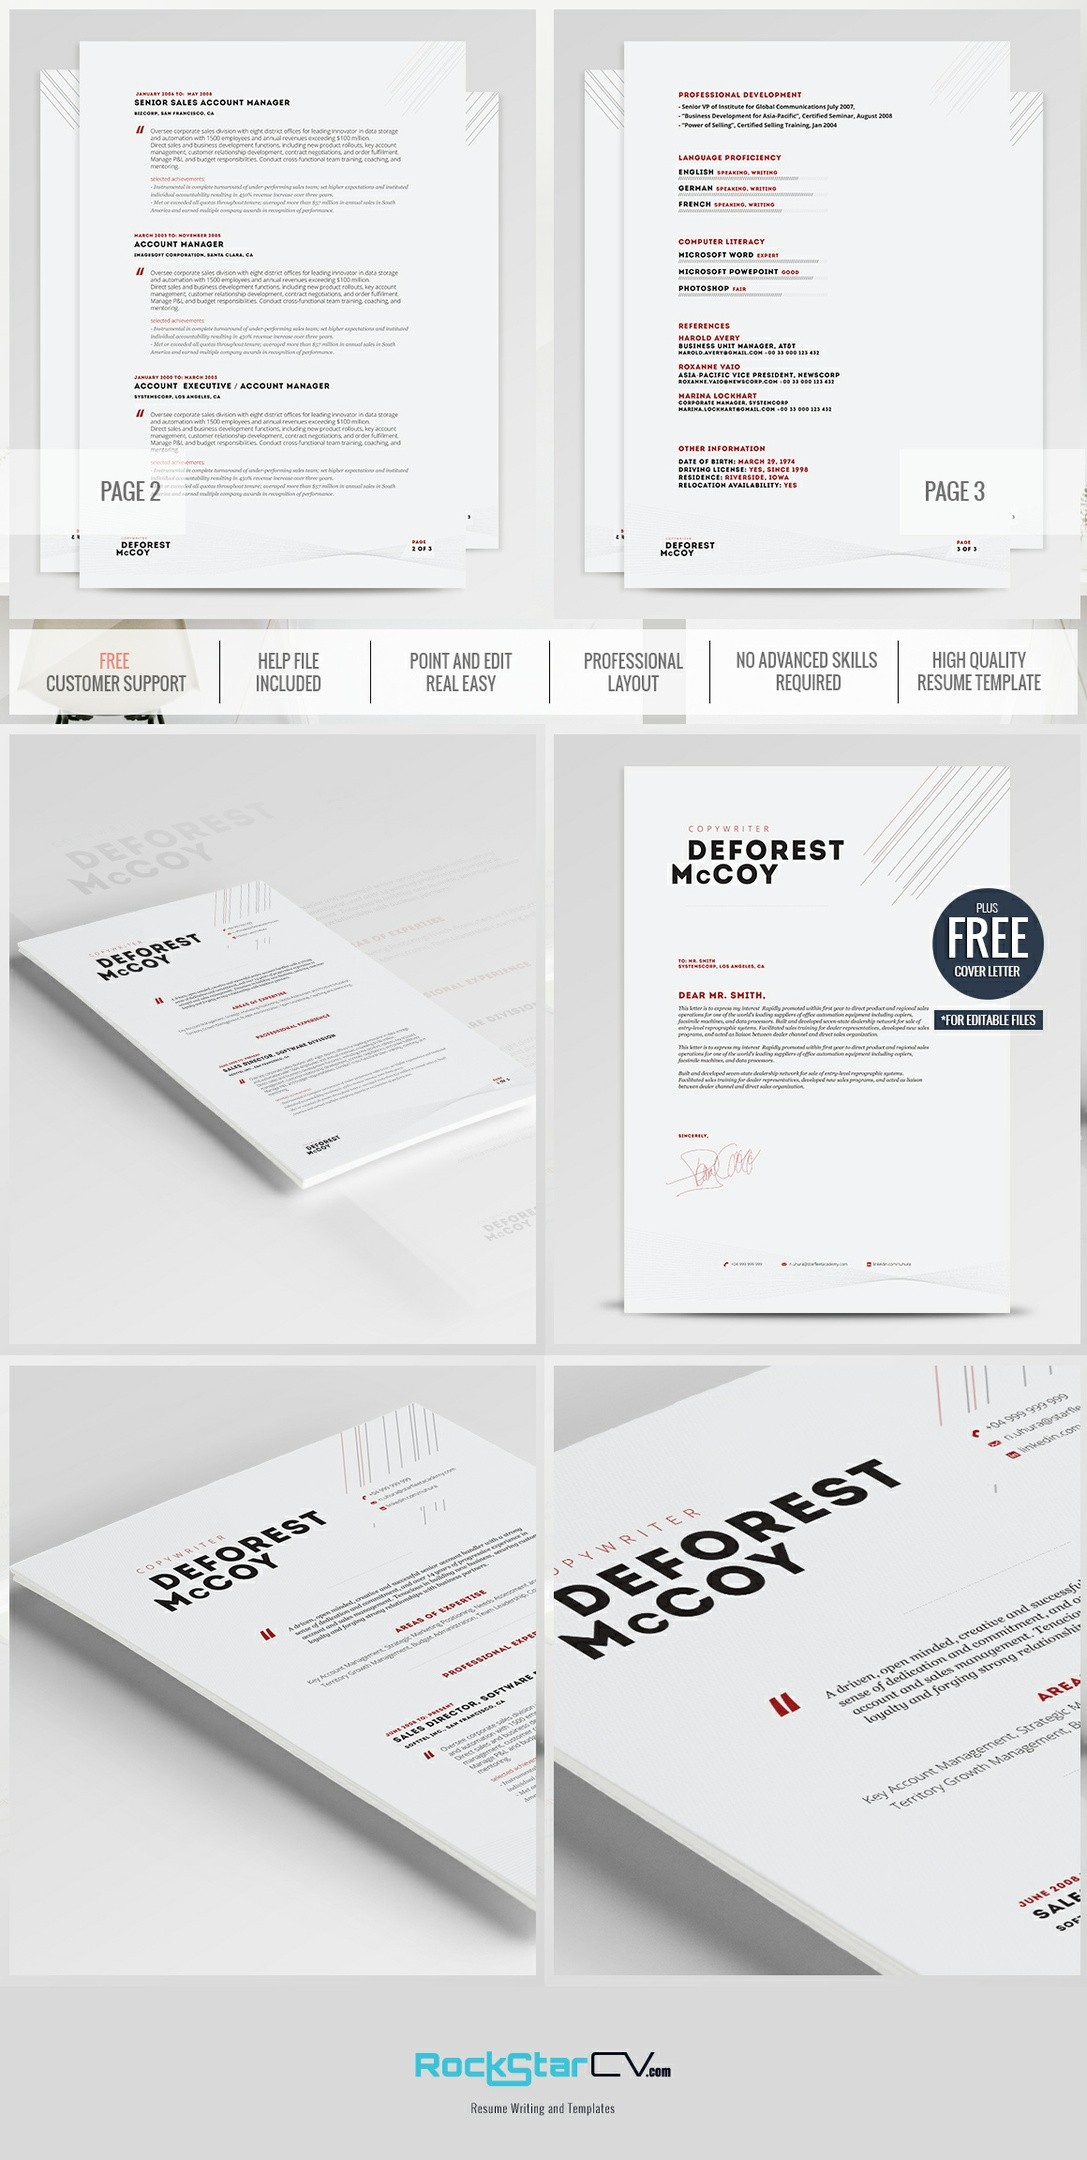 Creative Resume - Modern Resume Template - CV - Cover Letter - Professional  Resume - Word Resume